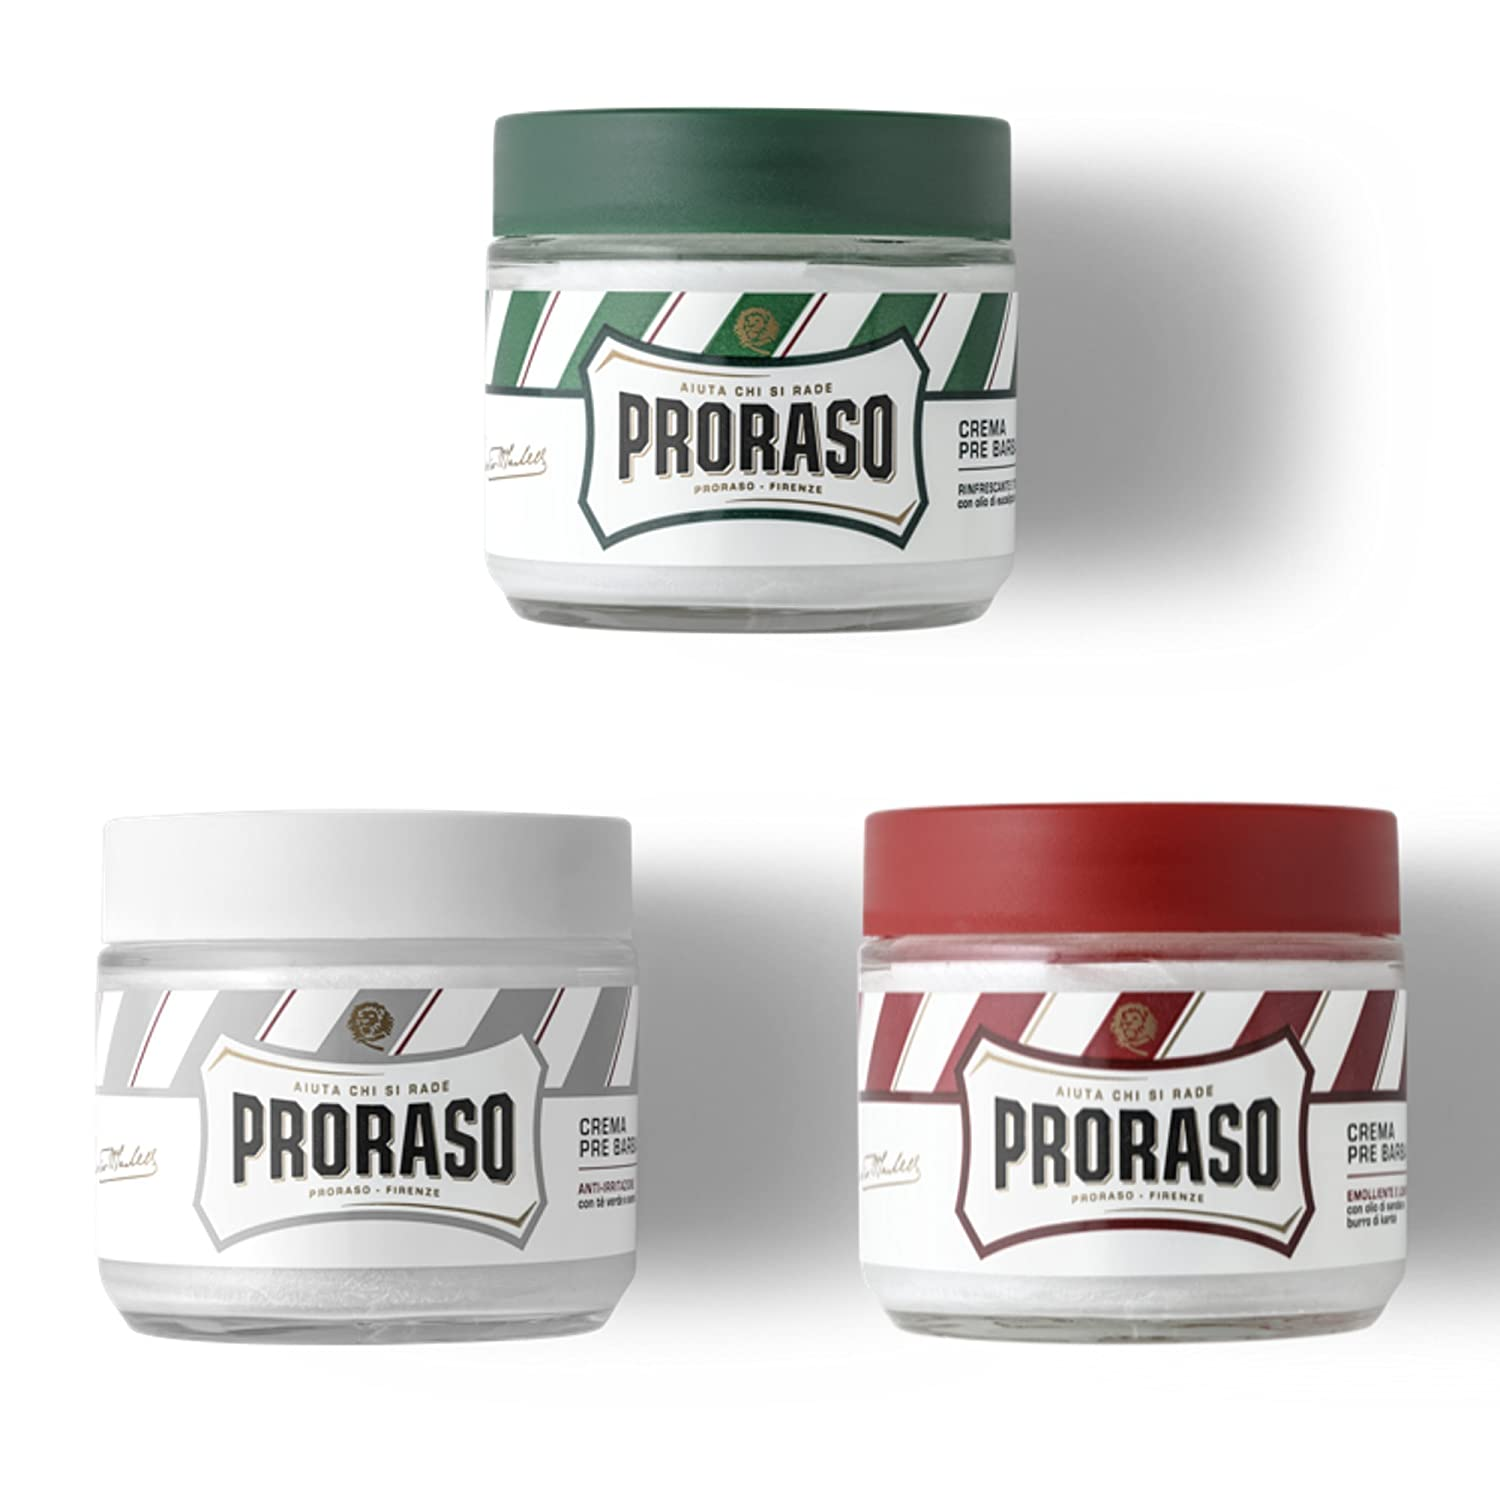 Triple Pack - Proraso Mixed Pre Shave Cream | Green, Red, White 100ml Jar in Box